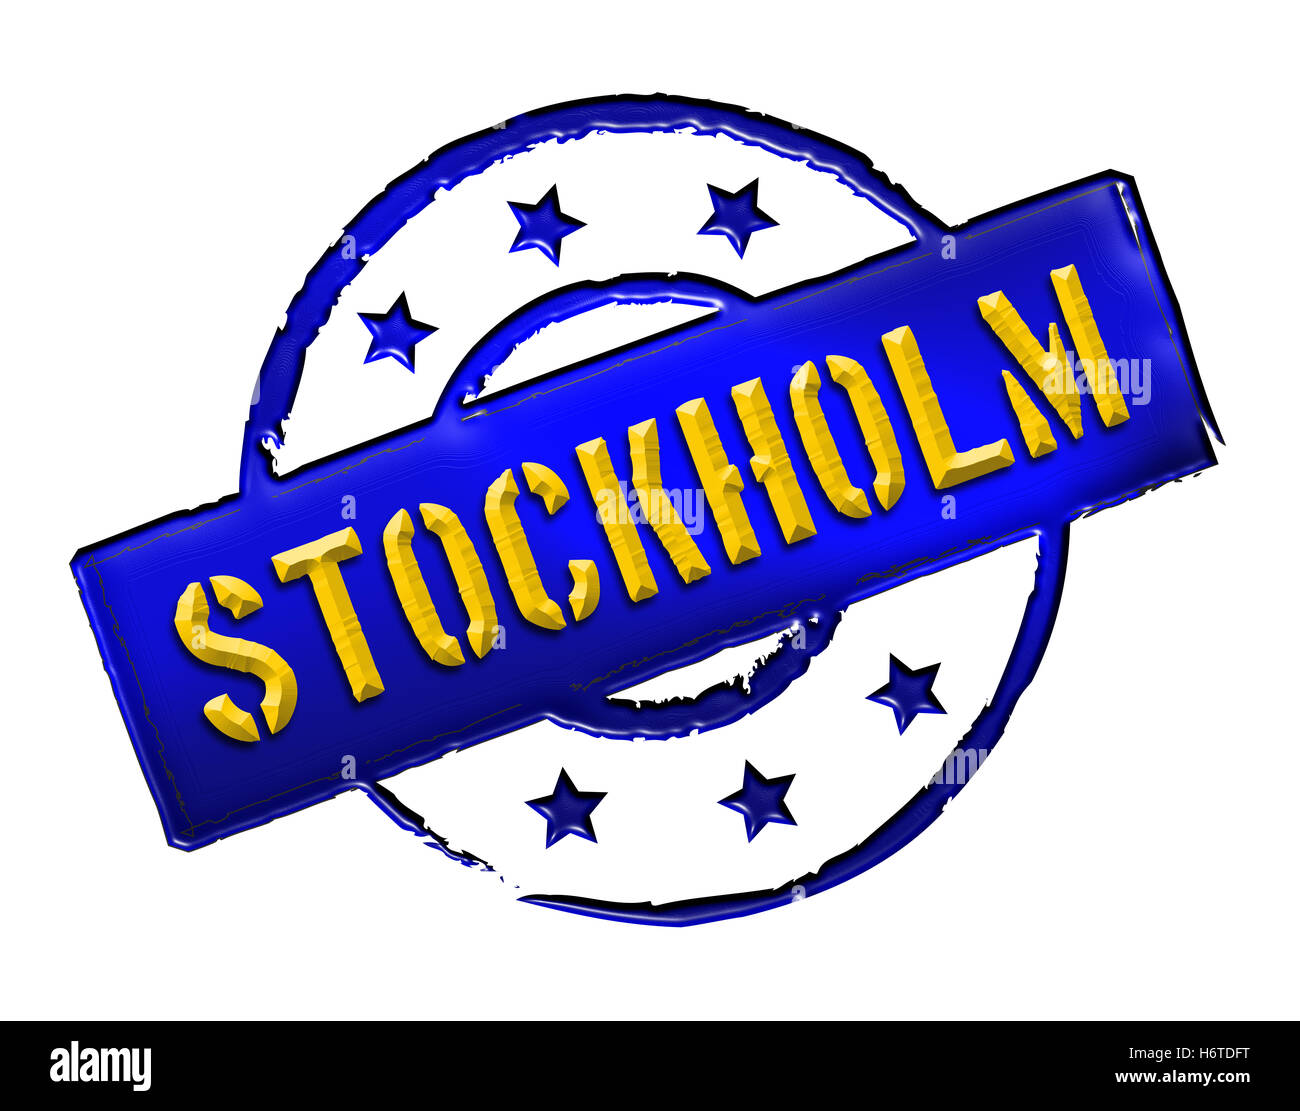 sweden stockholm stockhom capital suede isolated sweden caution important abstract stockholm stockhom retro label - Stock Image